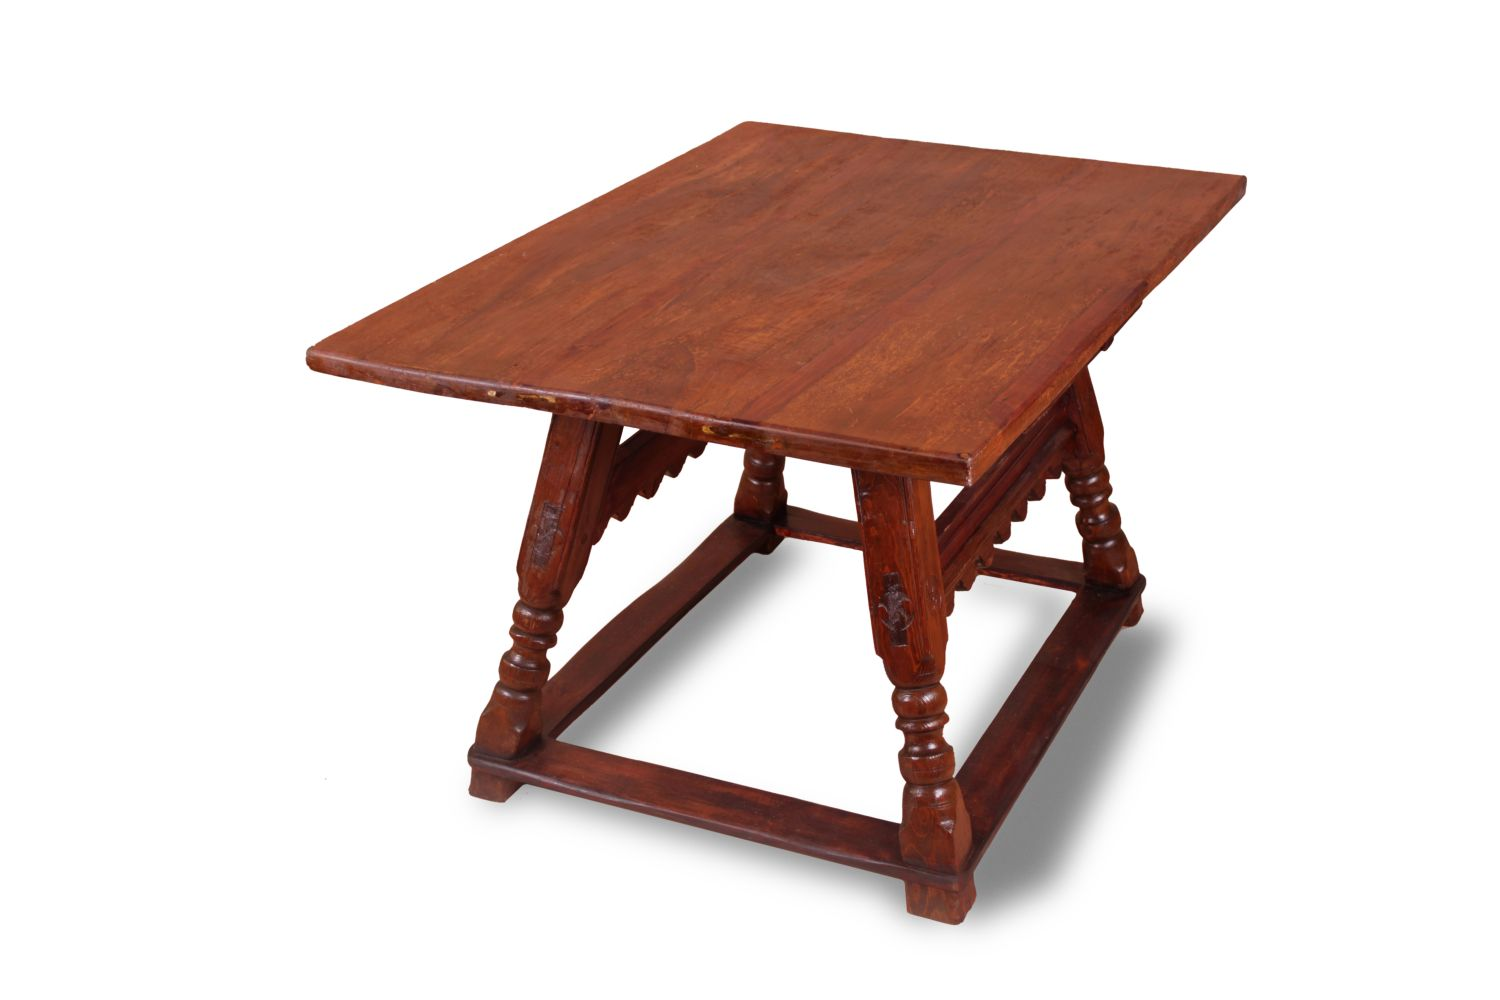 #126 Farmhouse Table | Bauerntisch Image